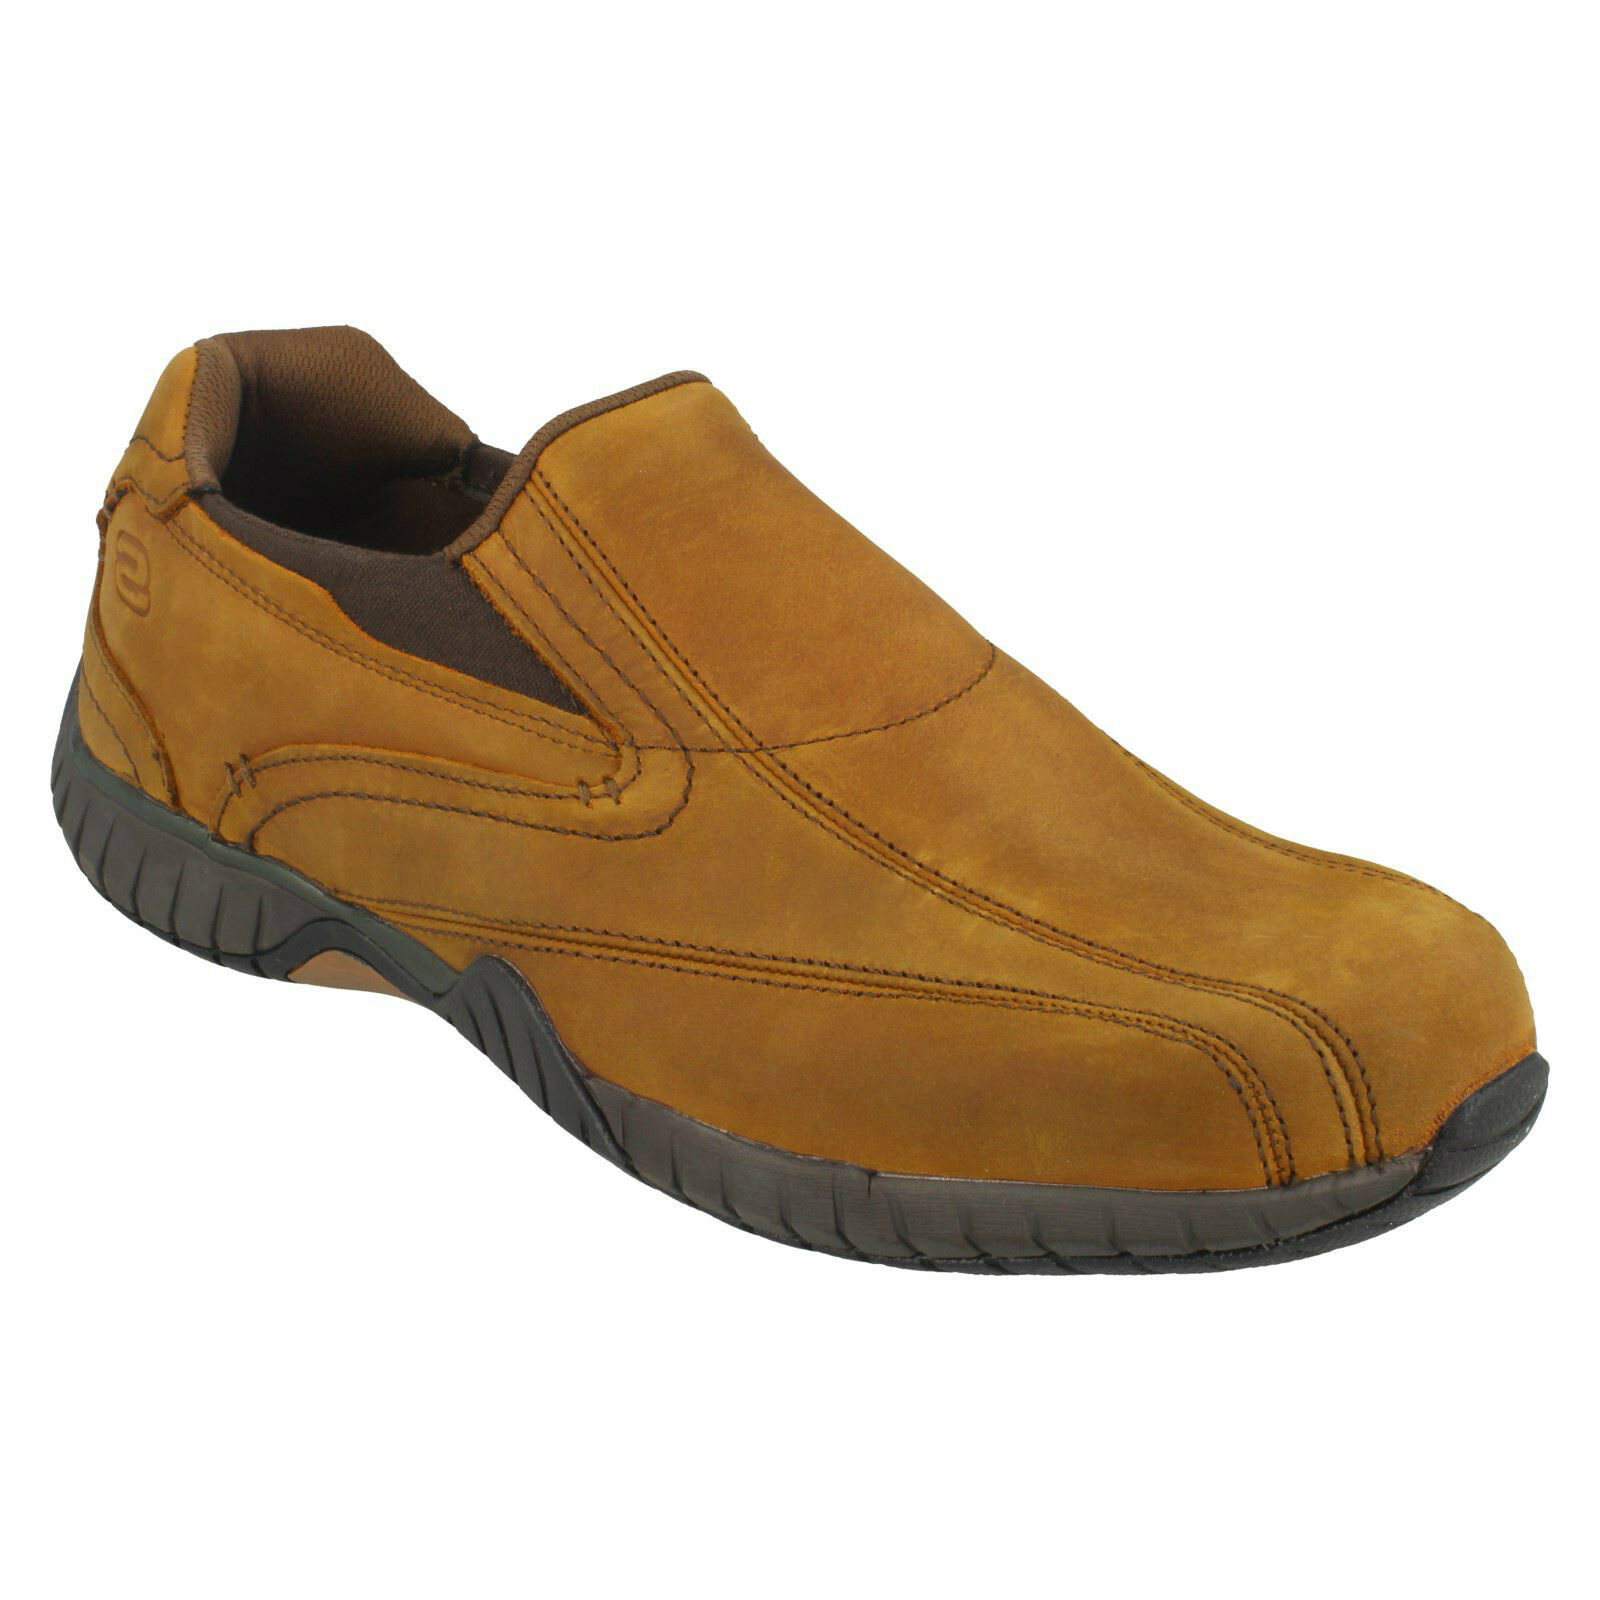 Skechers Sendro Bascom Trainers Mens Memory Foam Slip On Leather Shoes